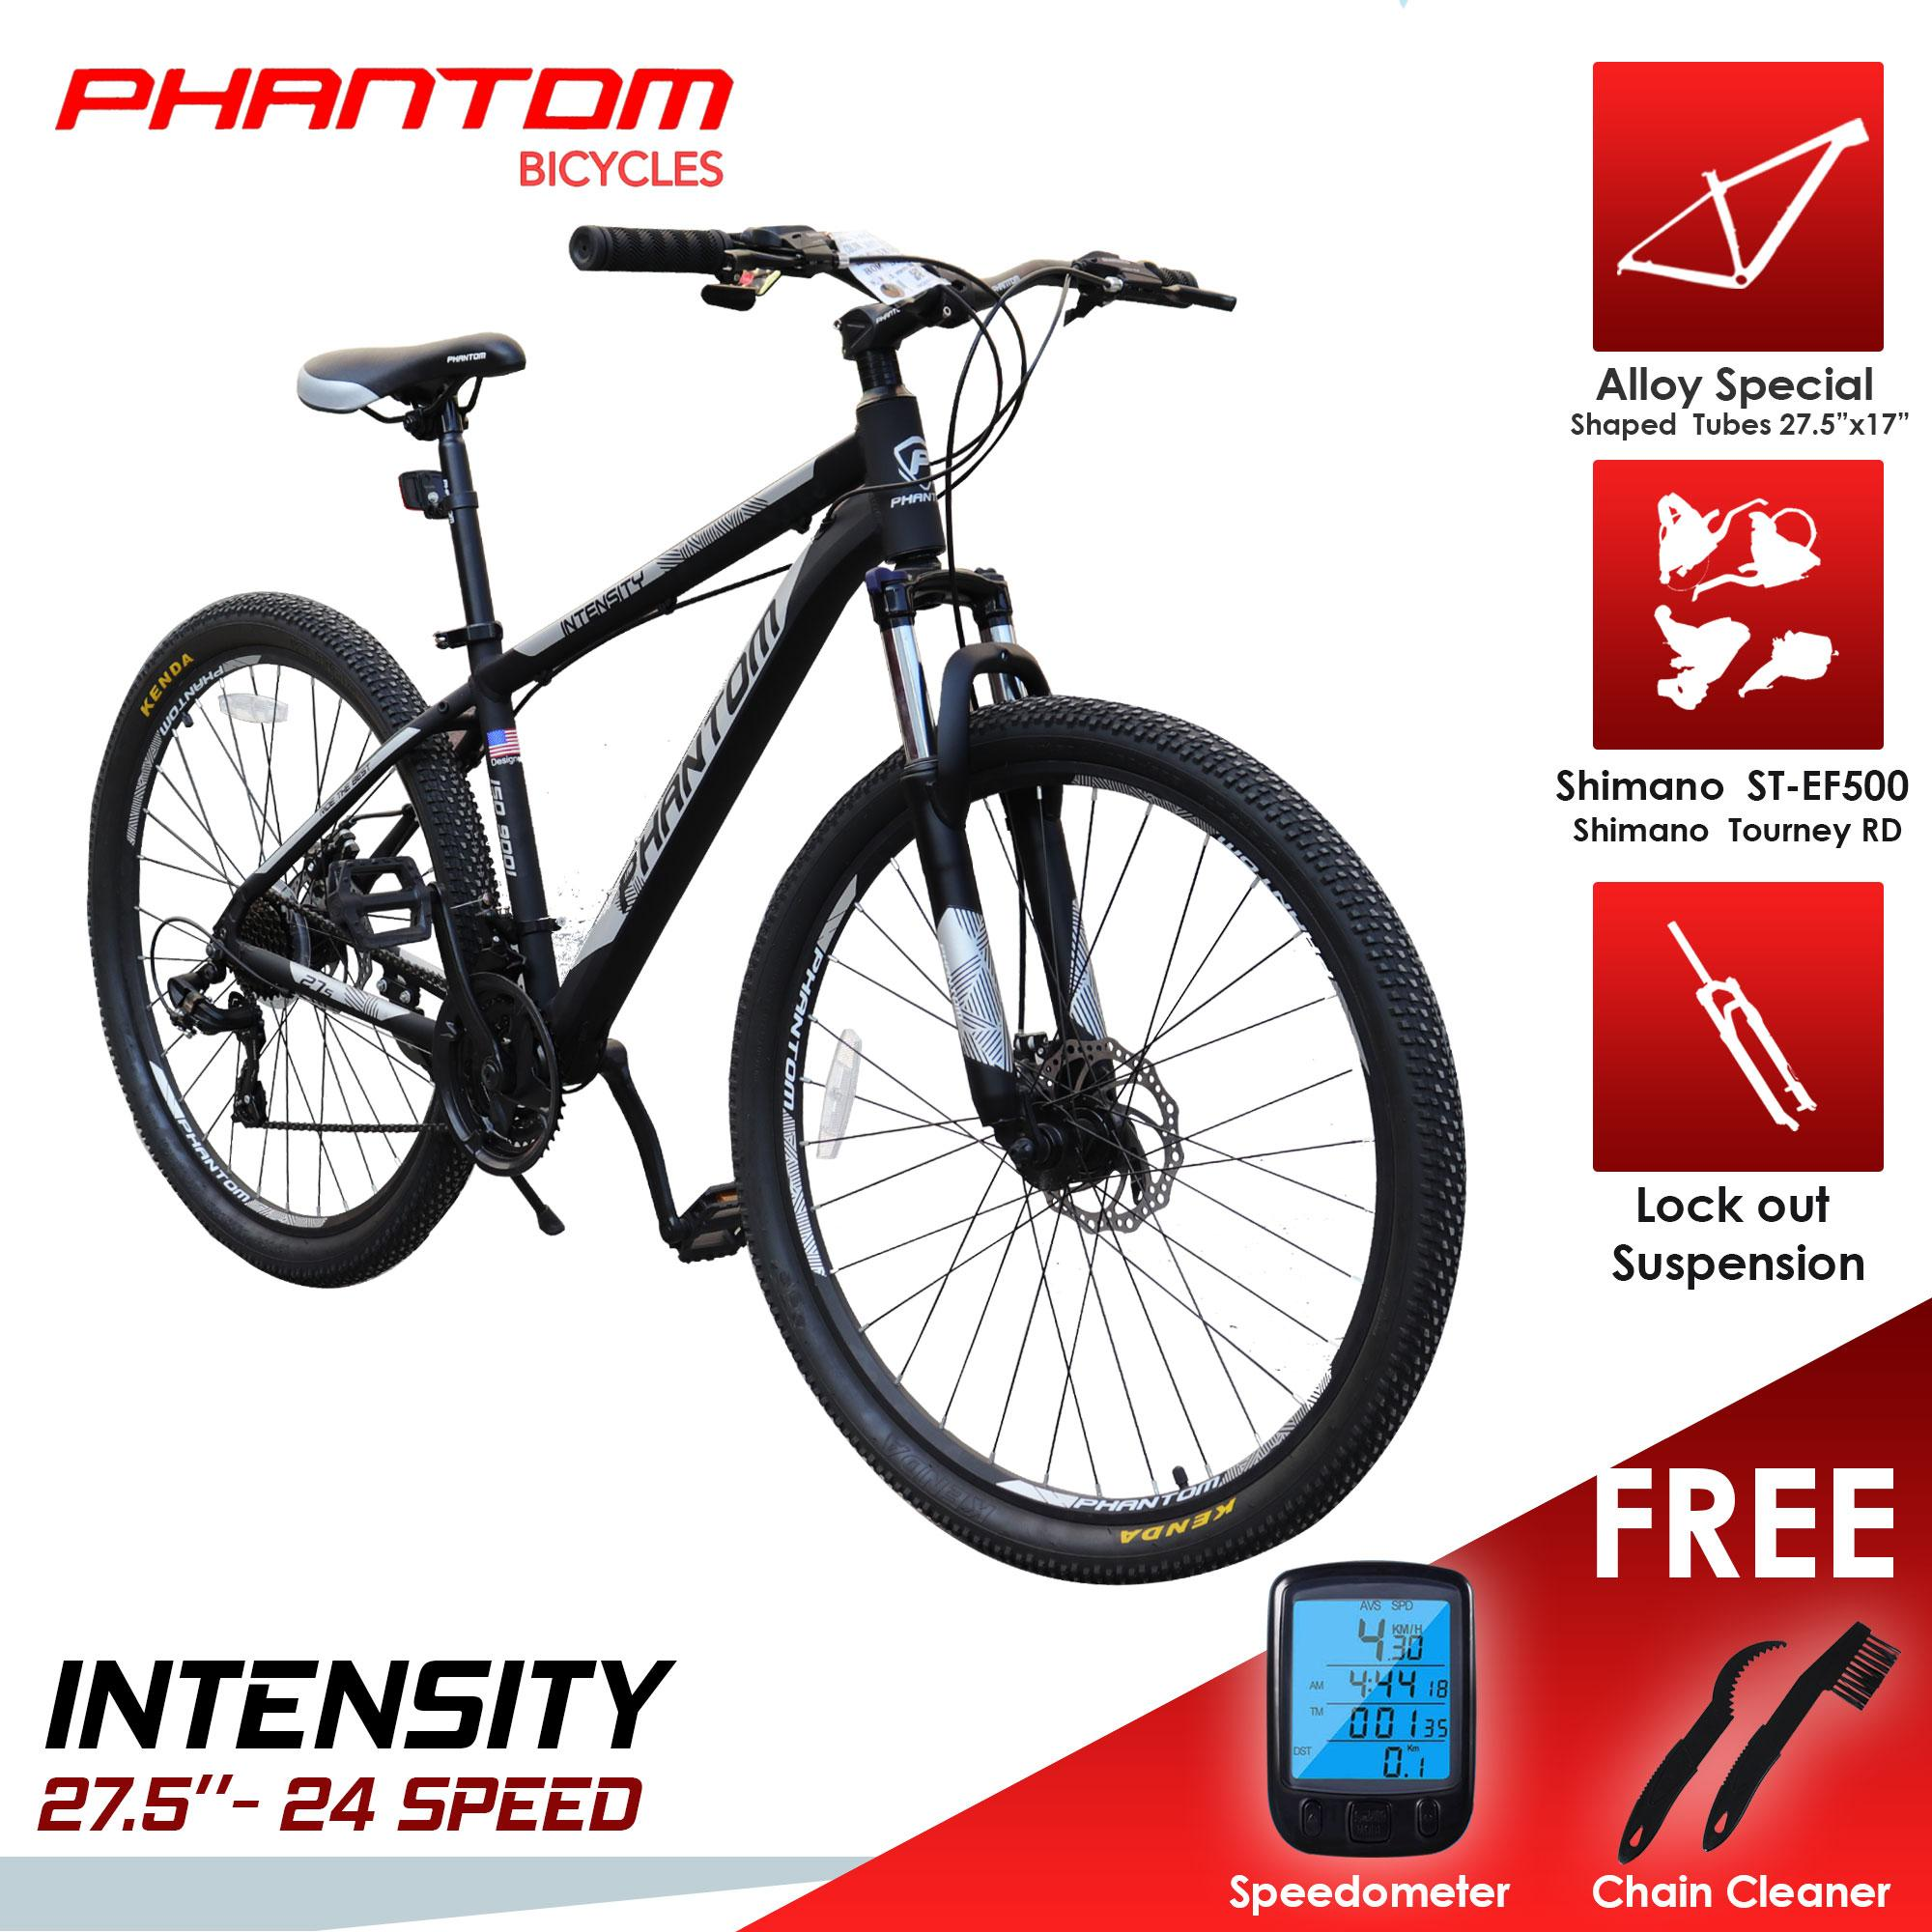 "2646db8d8 ... Mountain Bikes. PHANTOM INTENSITY 27.5""- 24 SPEED ALLOY FRAME with FREE  WIRELESS SPEEDOMETER and 2 in"